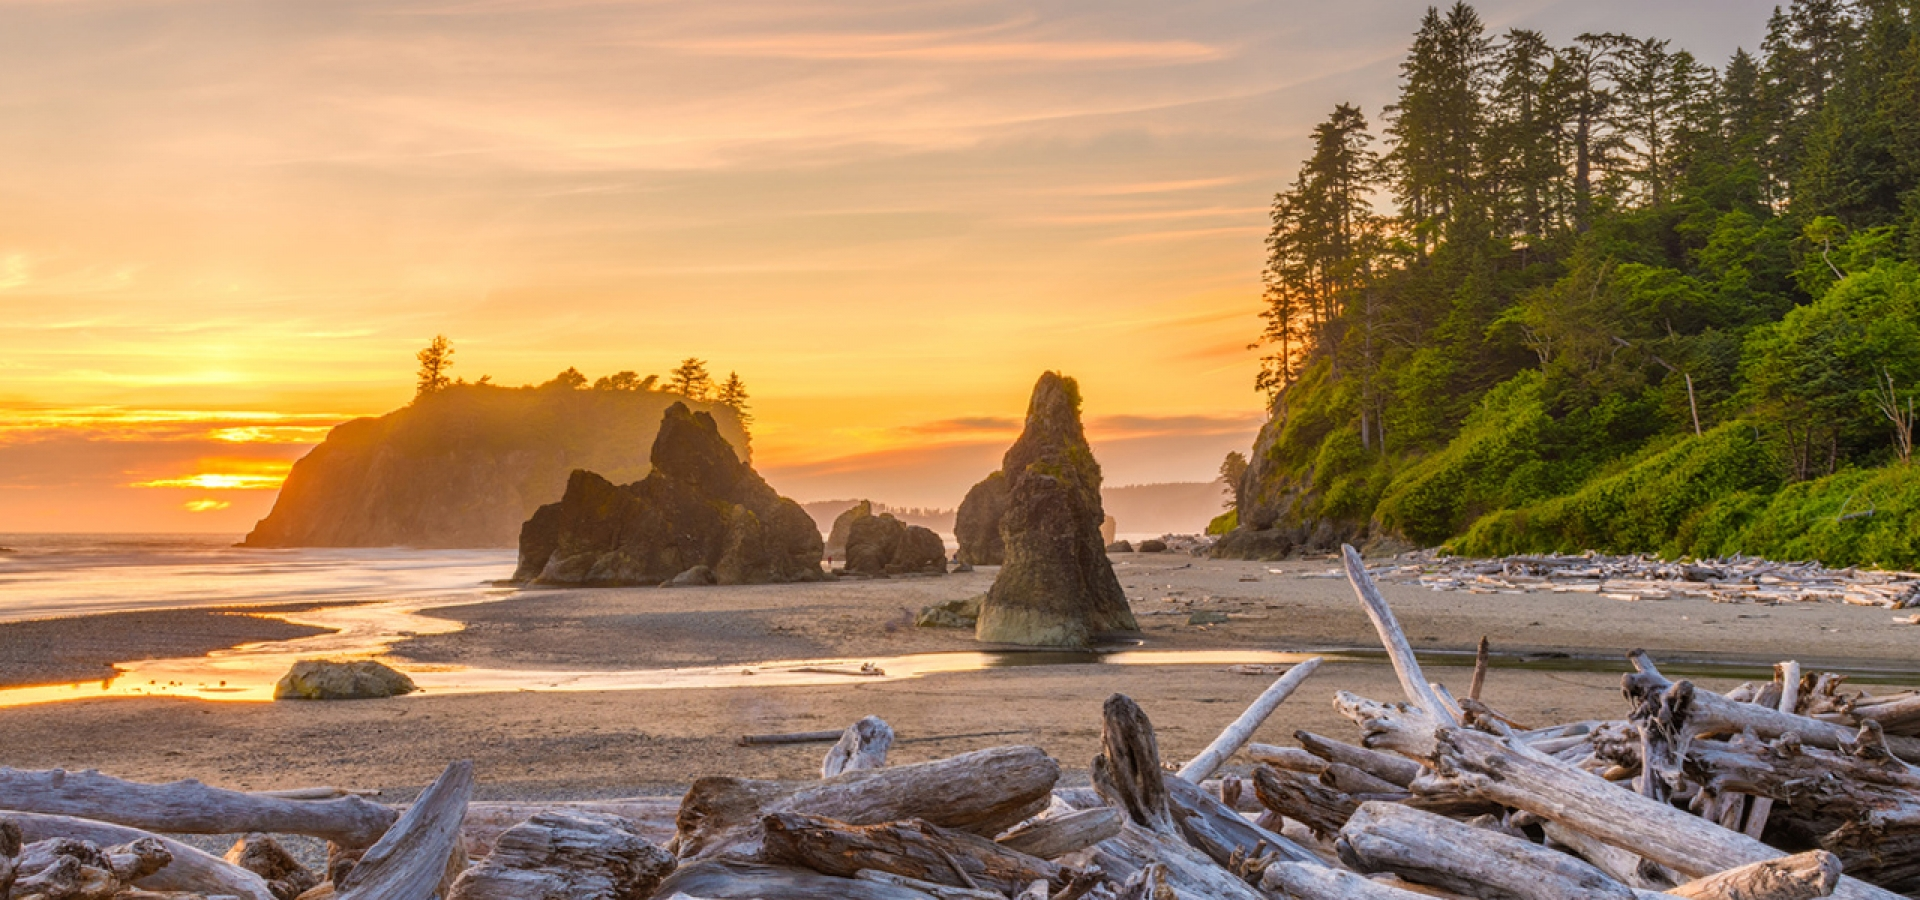 Olympic National Park beach view at sunset